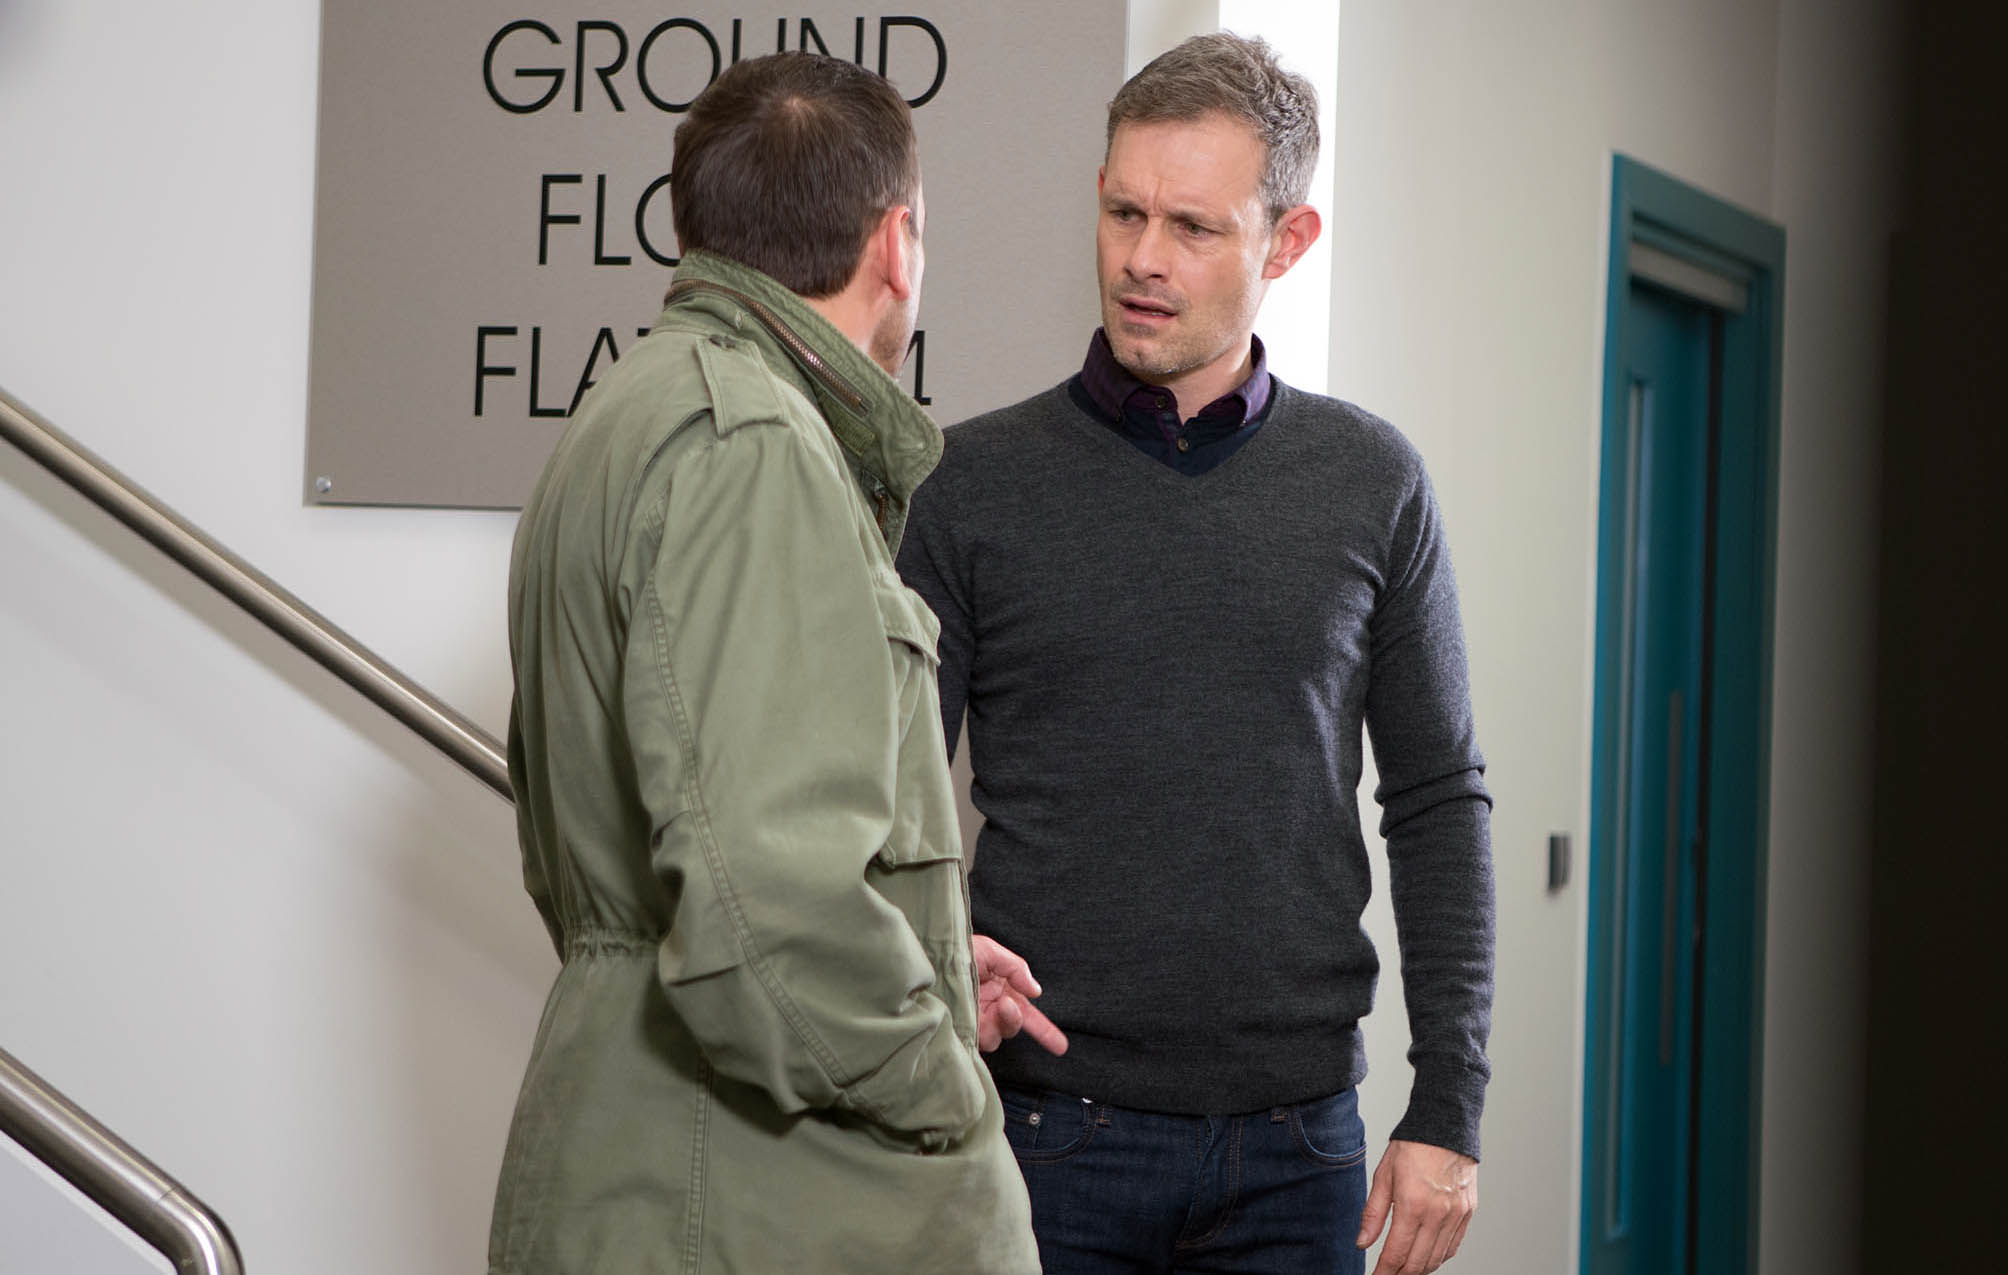 Nick Tilsley, Peter Barlow, Coronation Street